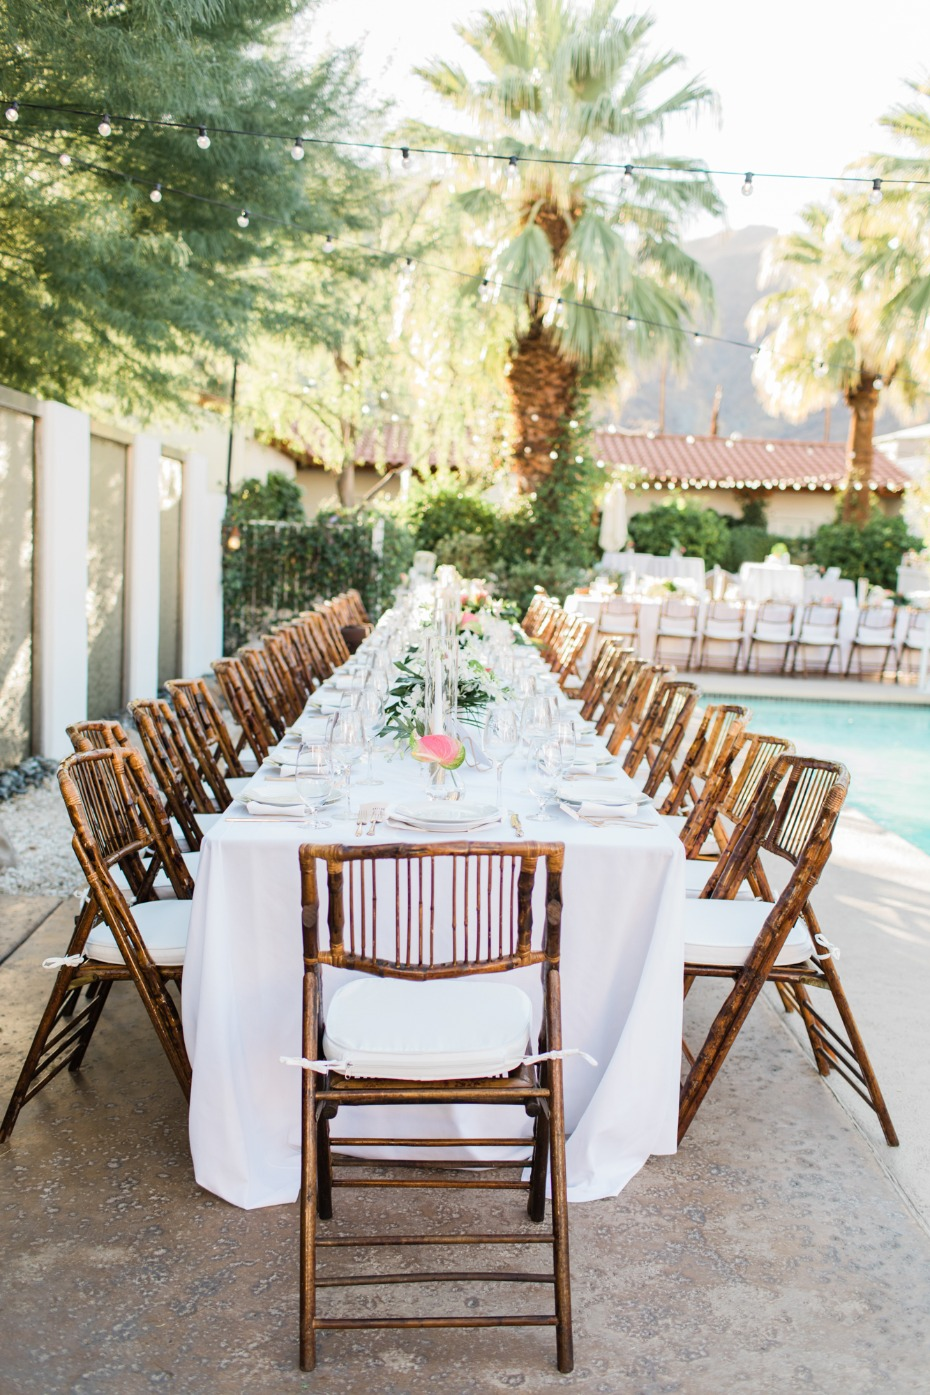 Family style poolside reception